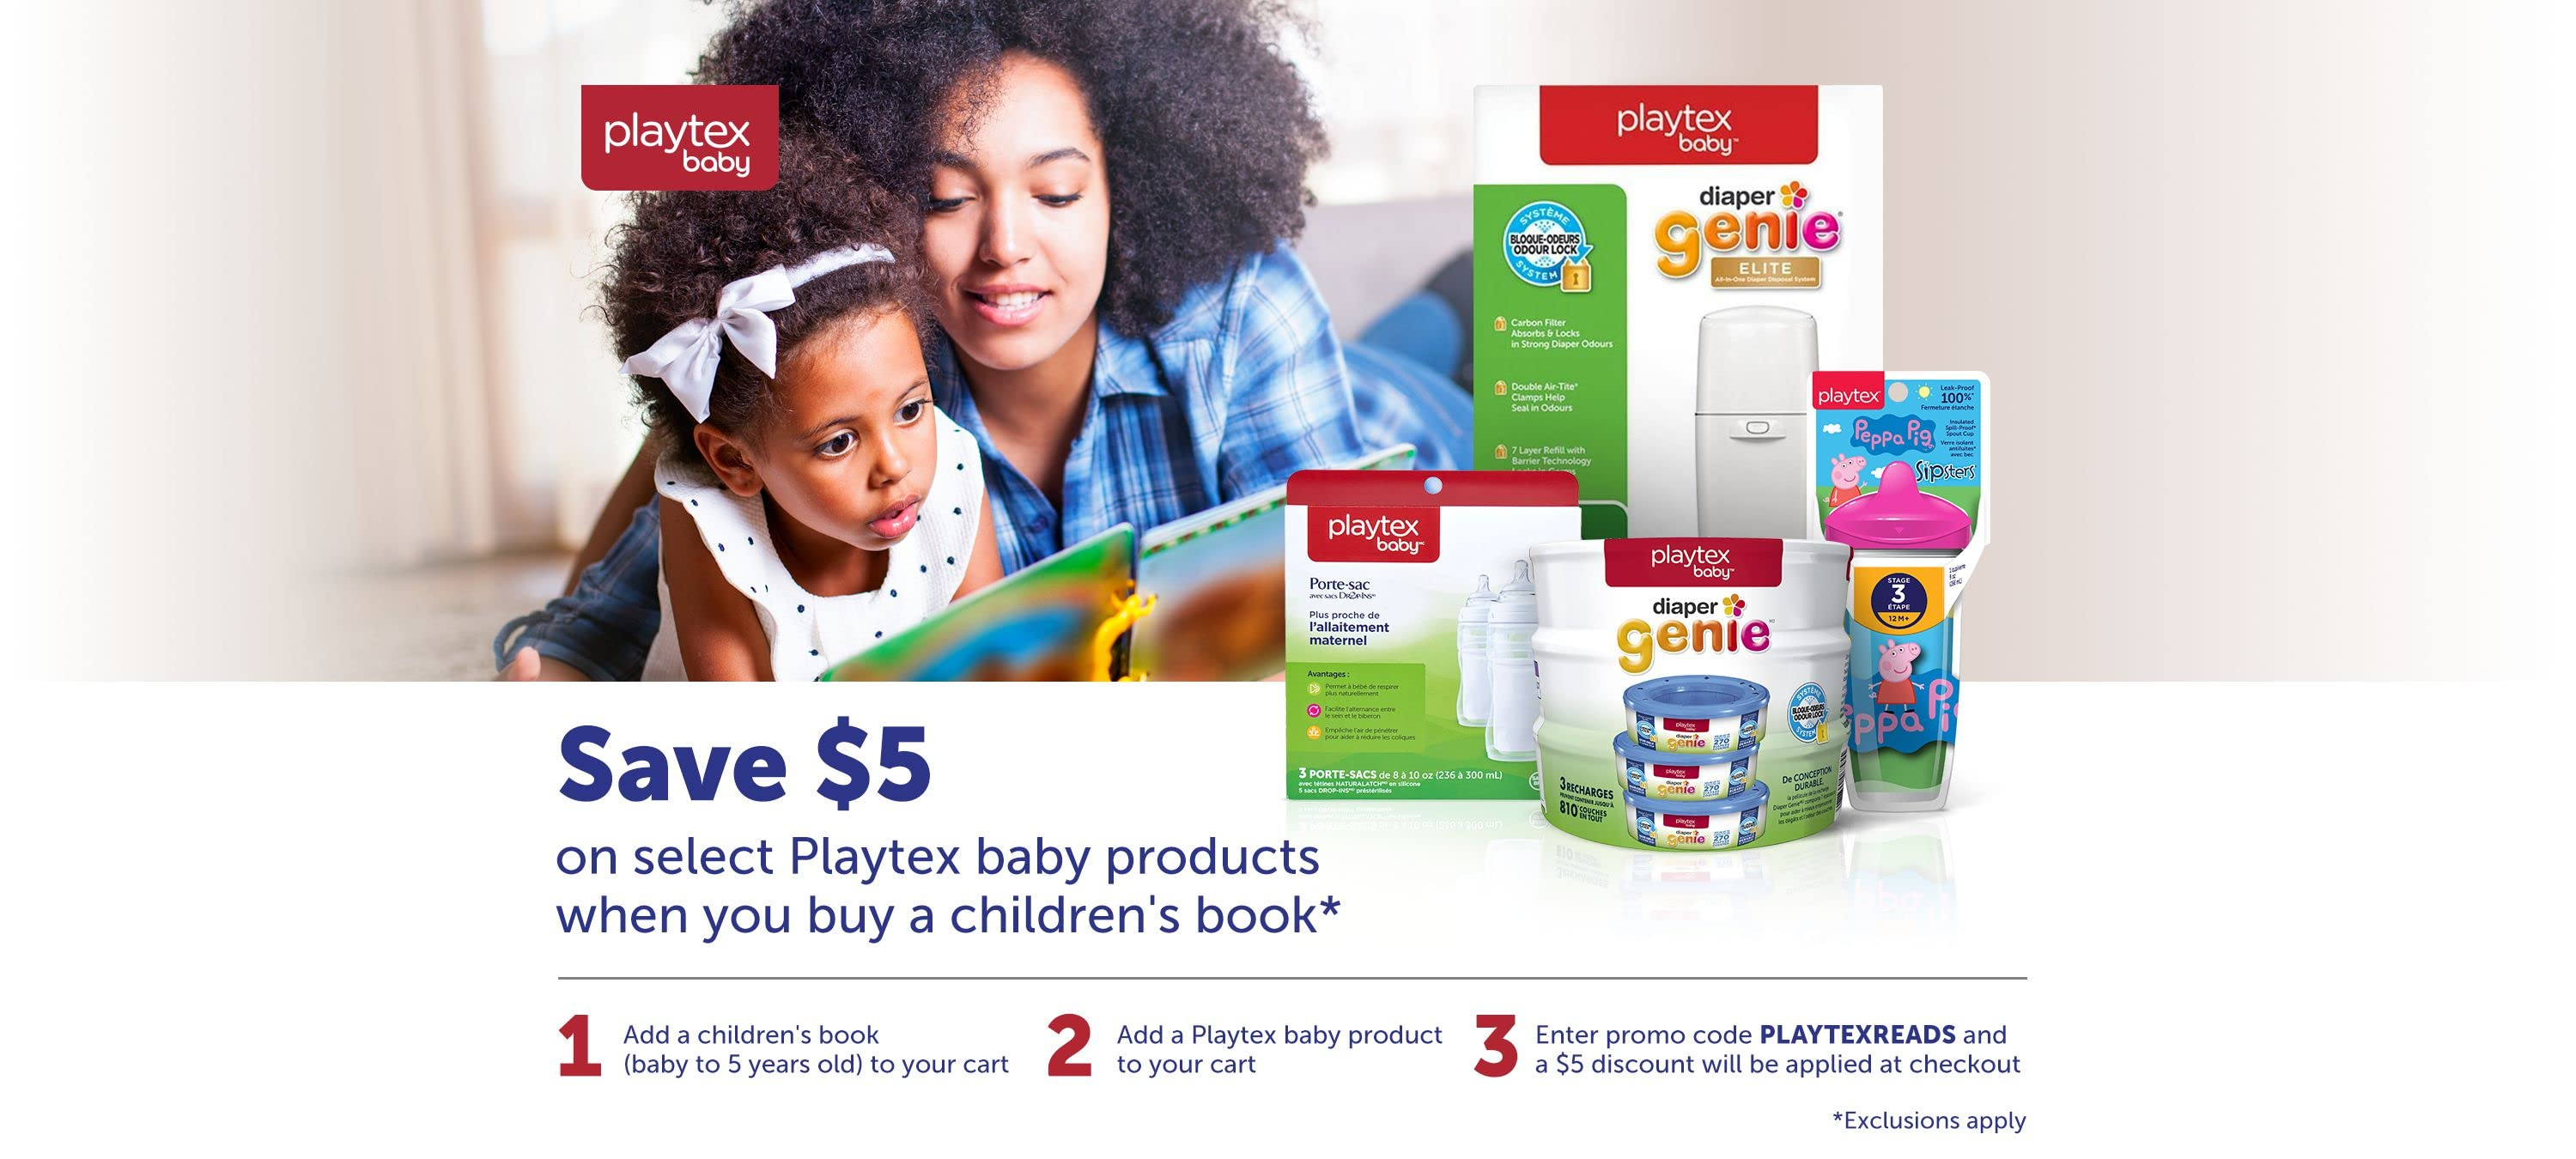 Playtex baby. Save $5 on select baby products when you buy a children's book